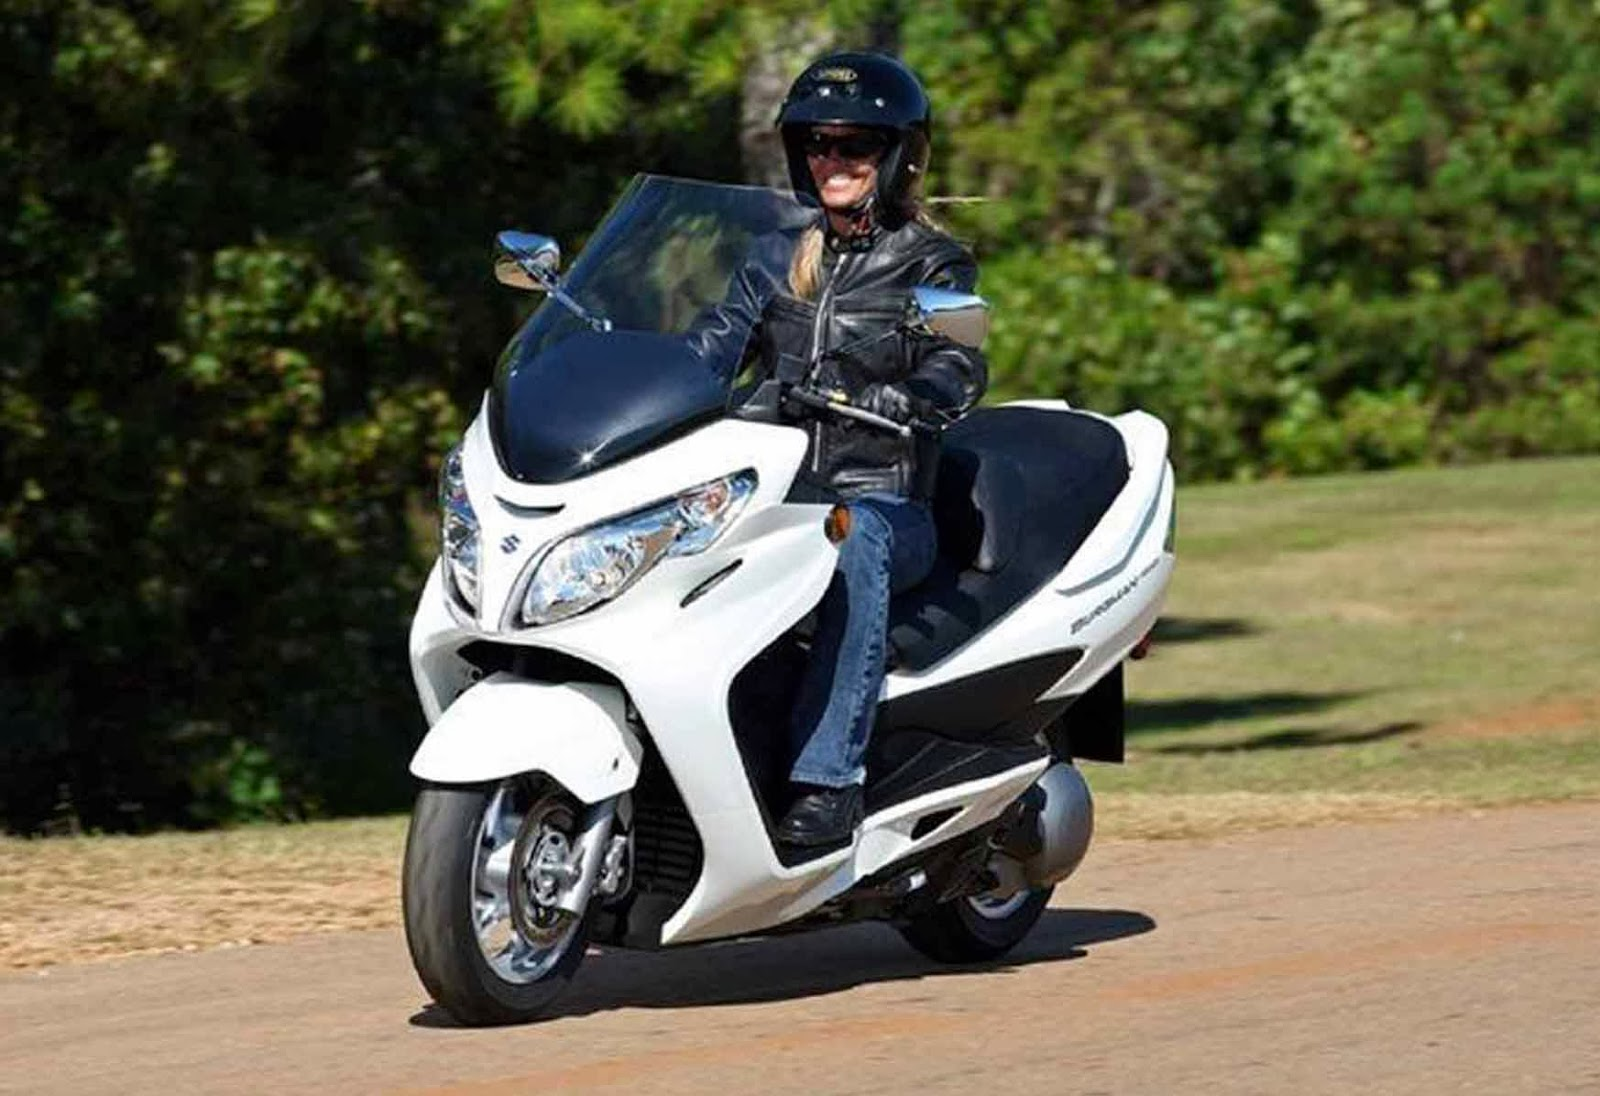 10 best motorcycles for women we obsessively cover the auto industry. Black Bedroom Furniture Sets. Home Design Ideas